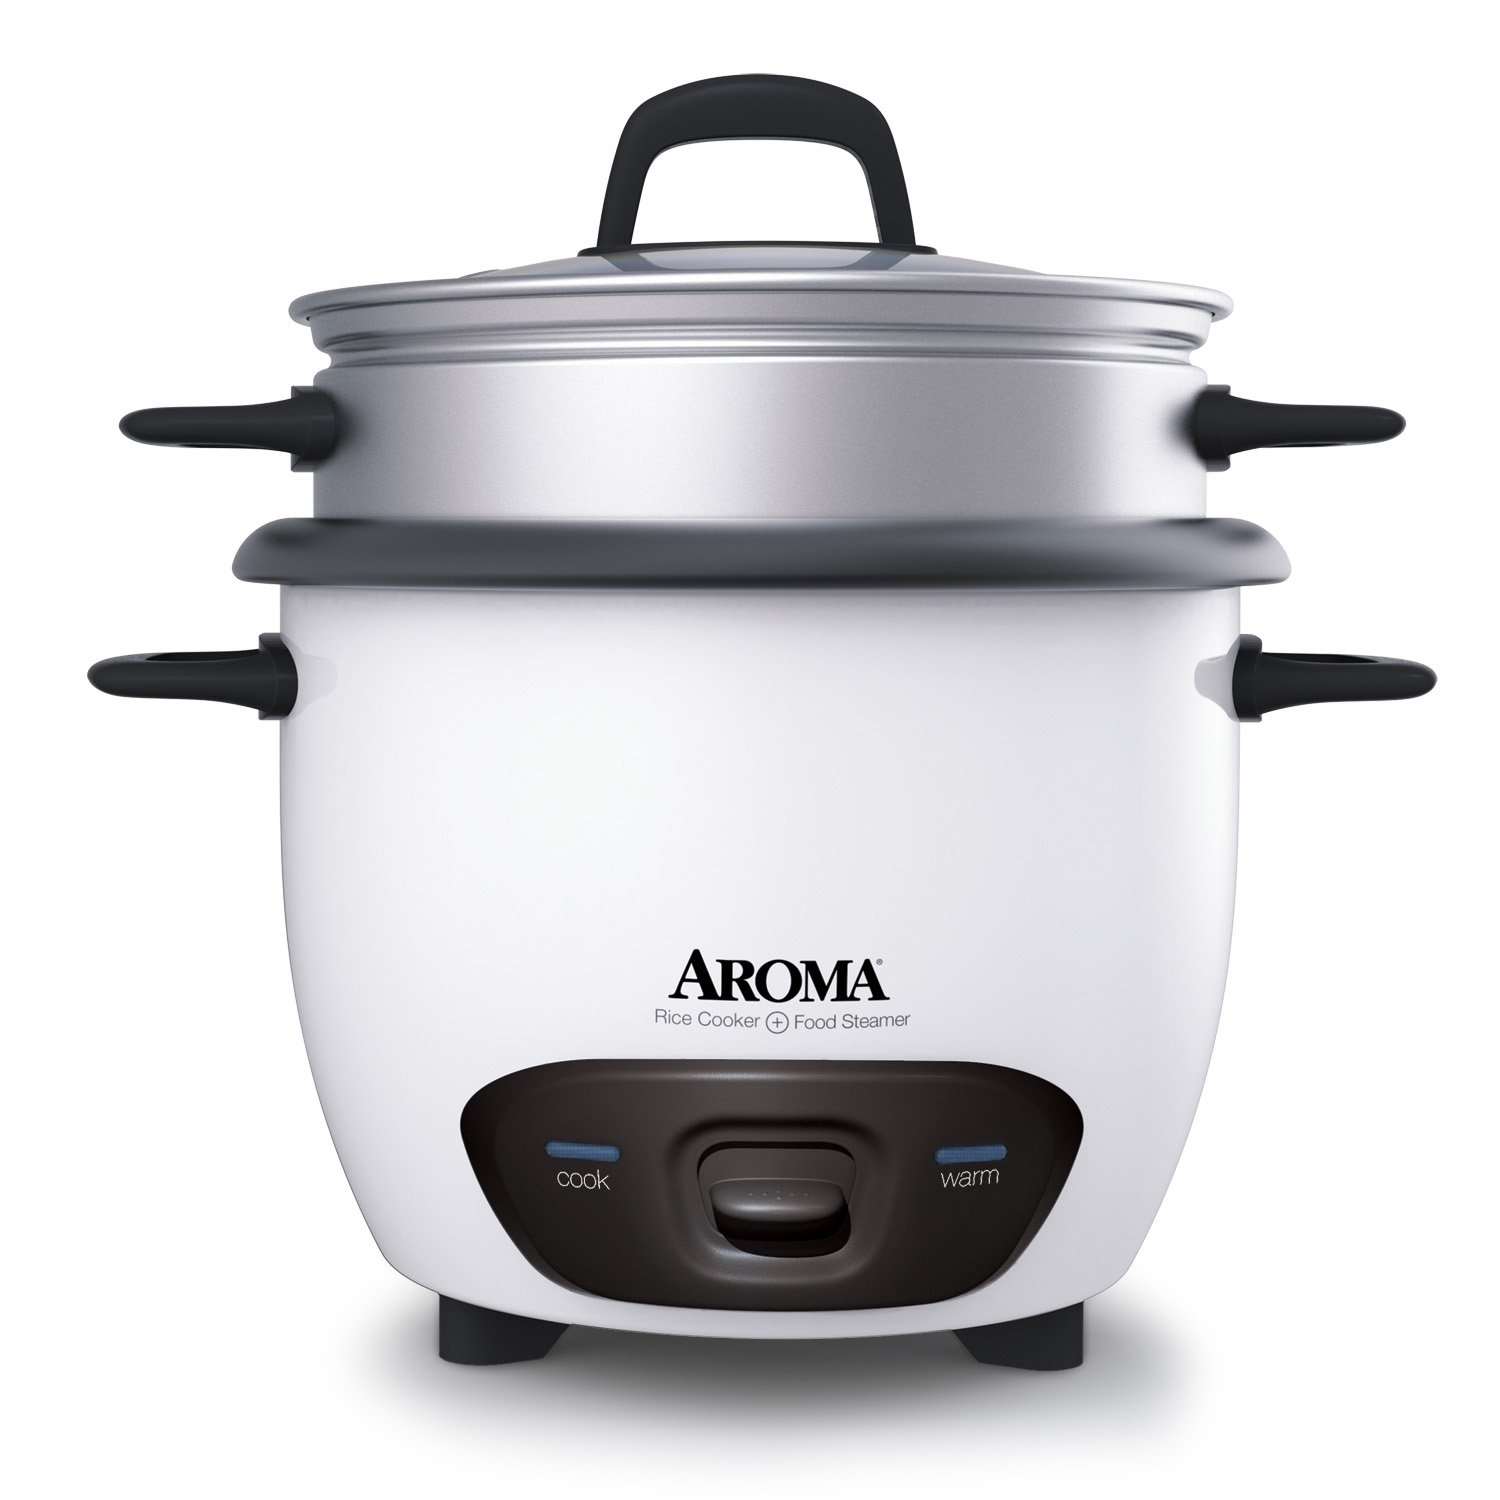 Aroma Housewares 6-Cup (Cooked)(3-Cup UNCOOKED) Pot Style Rice Cooker and Food Steamer (ARC-743-1NG)